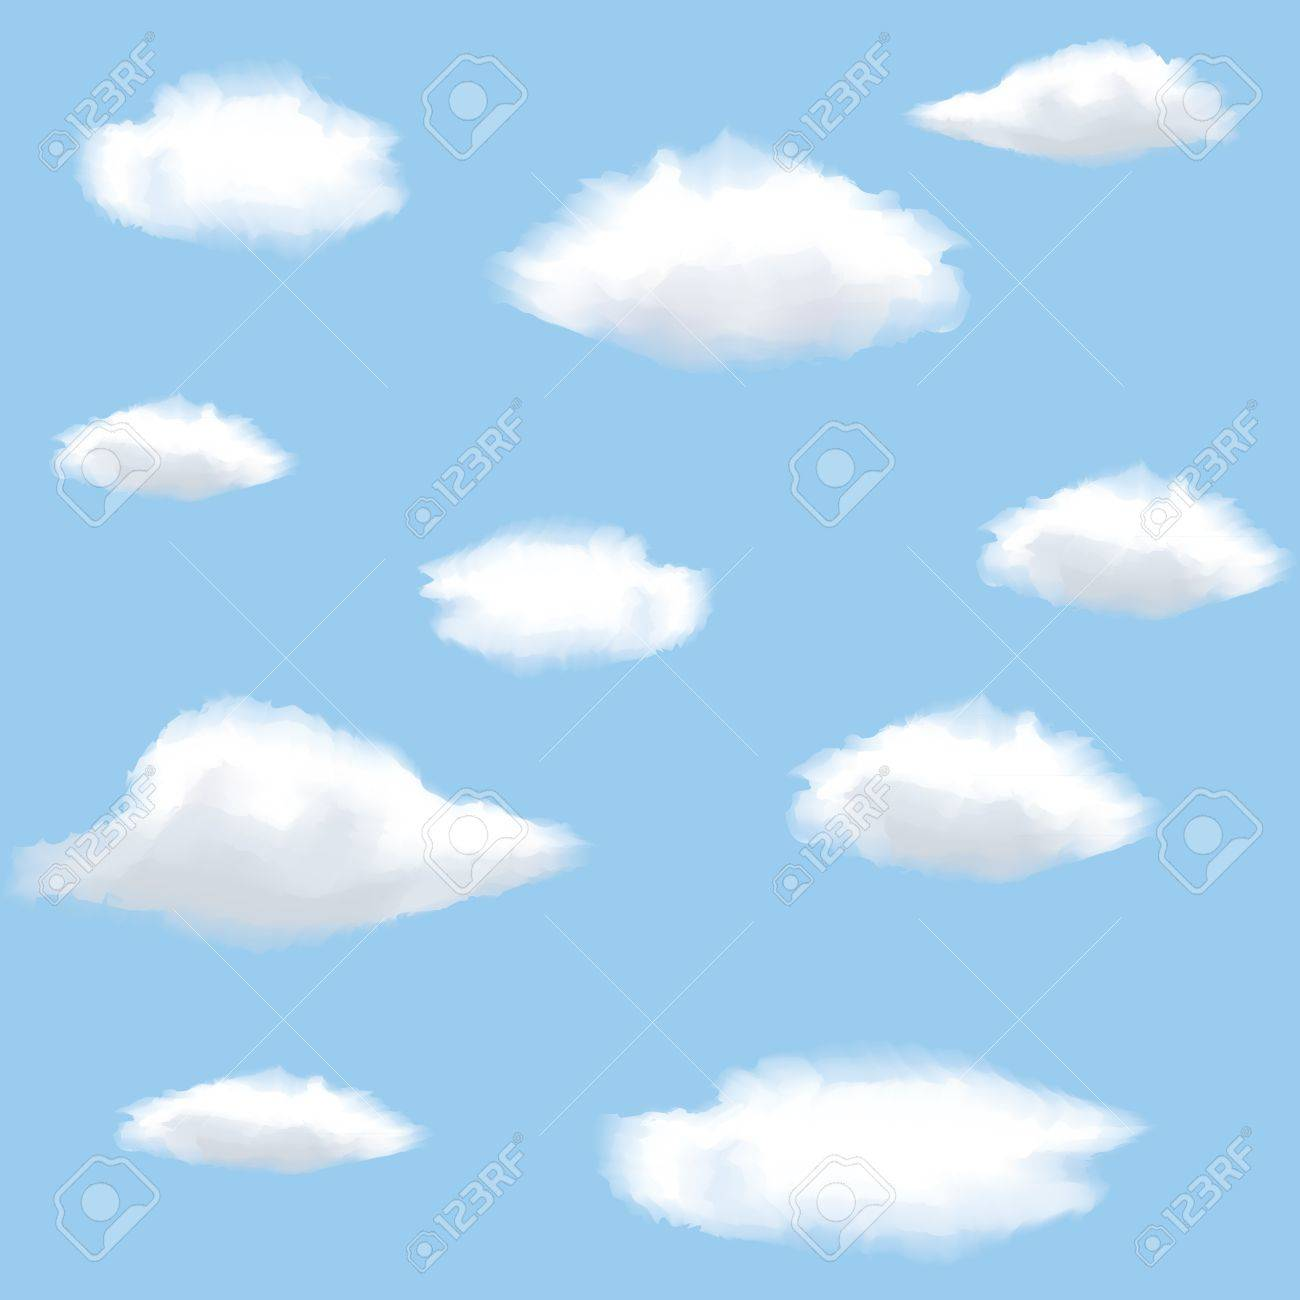 Seamless background with clouds on sky Stock Photo - 15605888